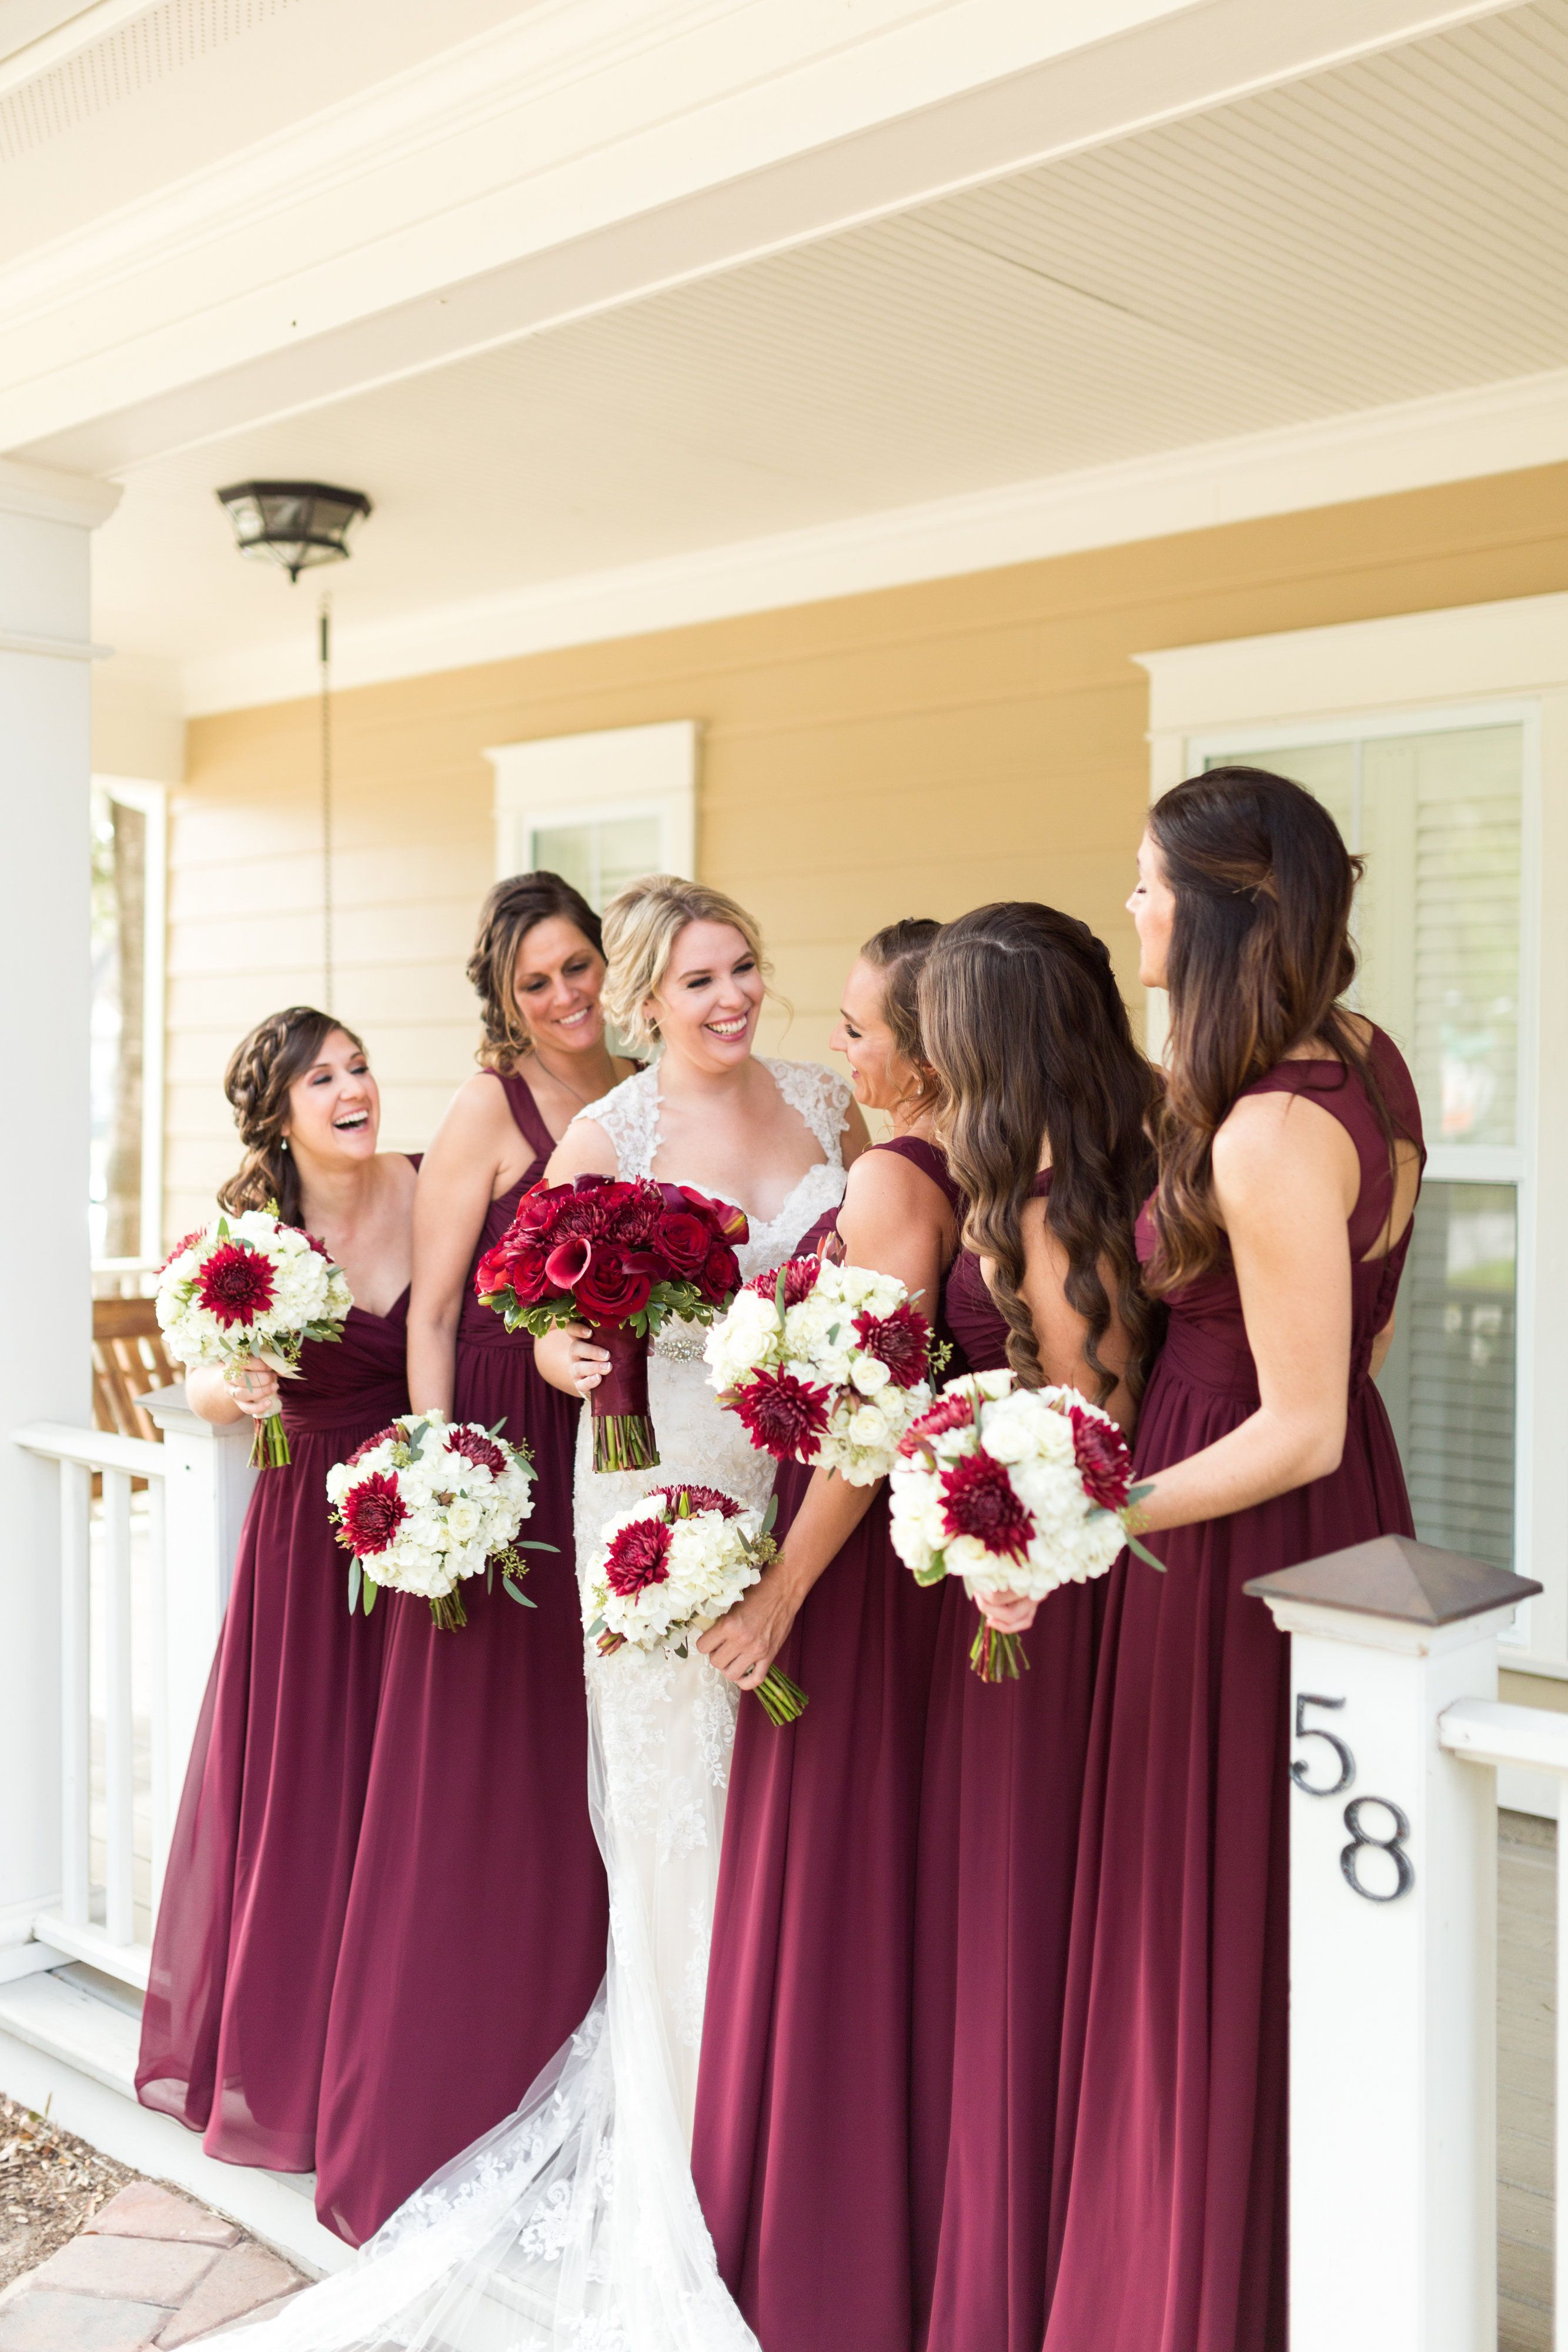 170d643ffb0 Bride and bridesmaids holding round bouquets in shades of red and white.  Christmas theme wedding. Maroon bridesmaids dresses.